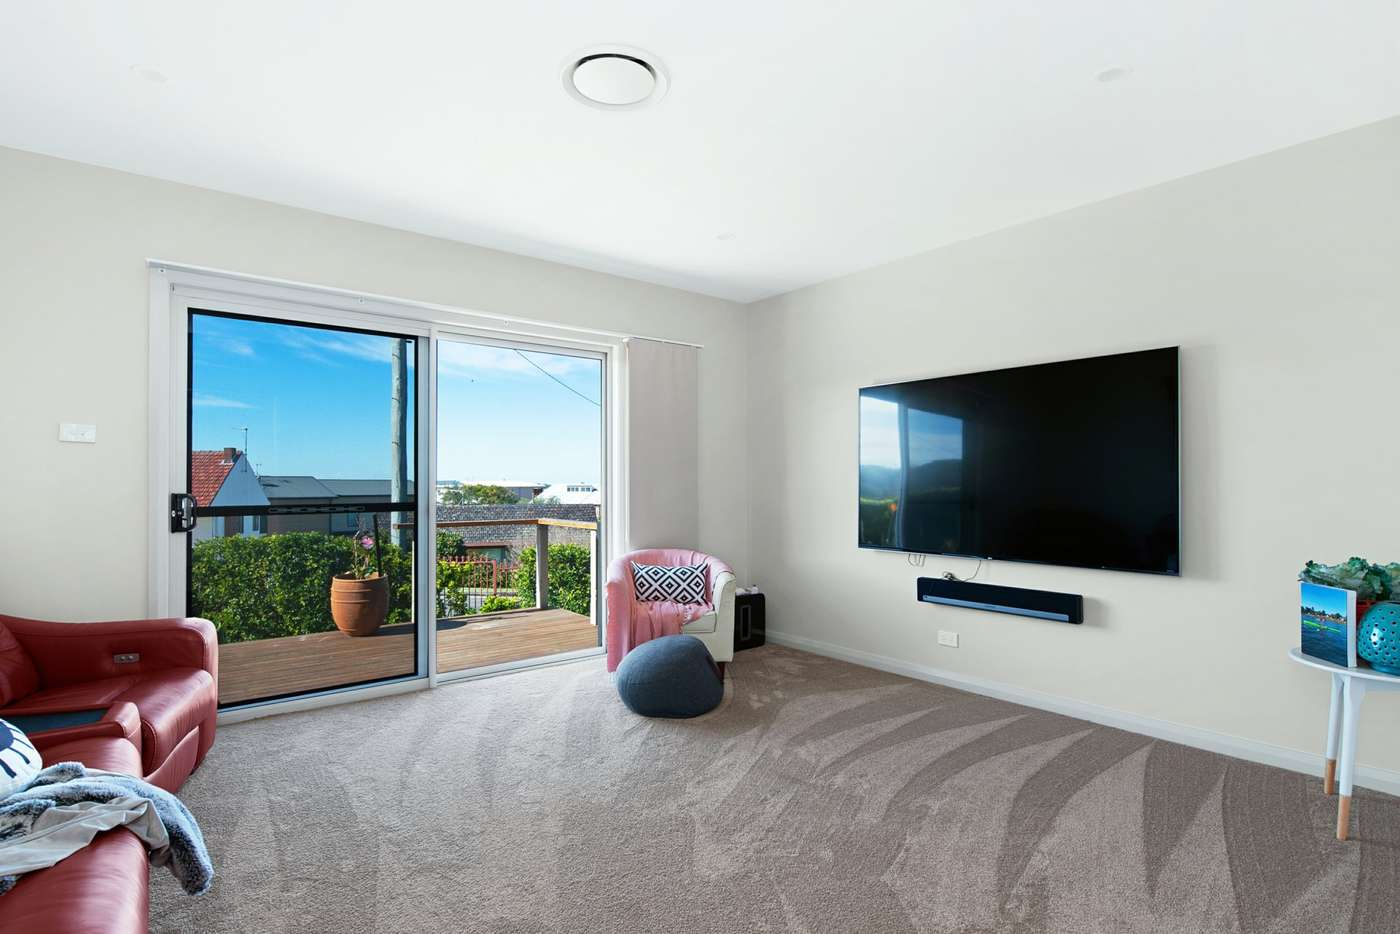 Sixth view of Homely house listing, 42 Crown Street, Belmont NSW 2280